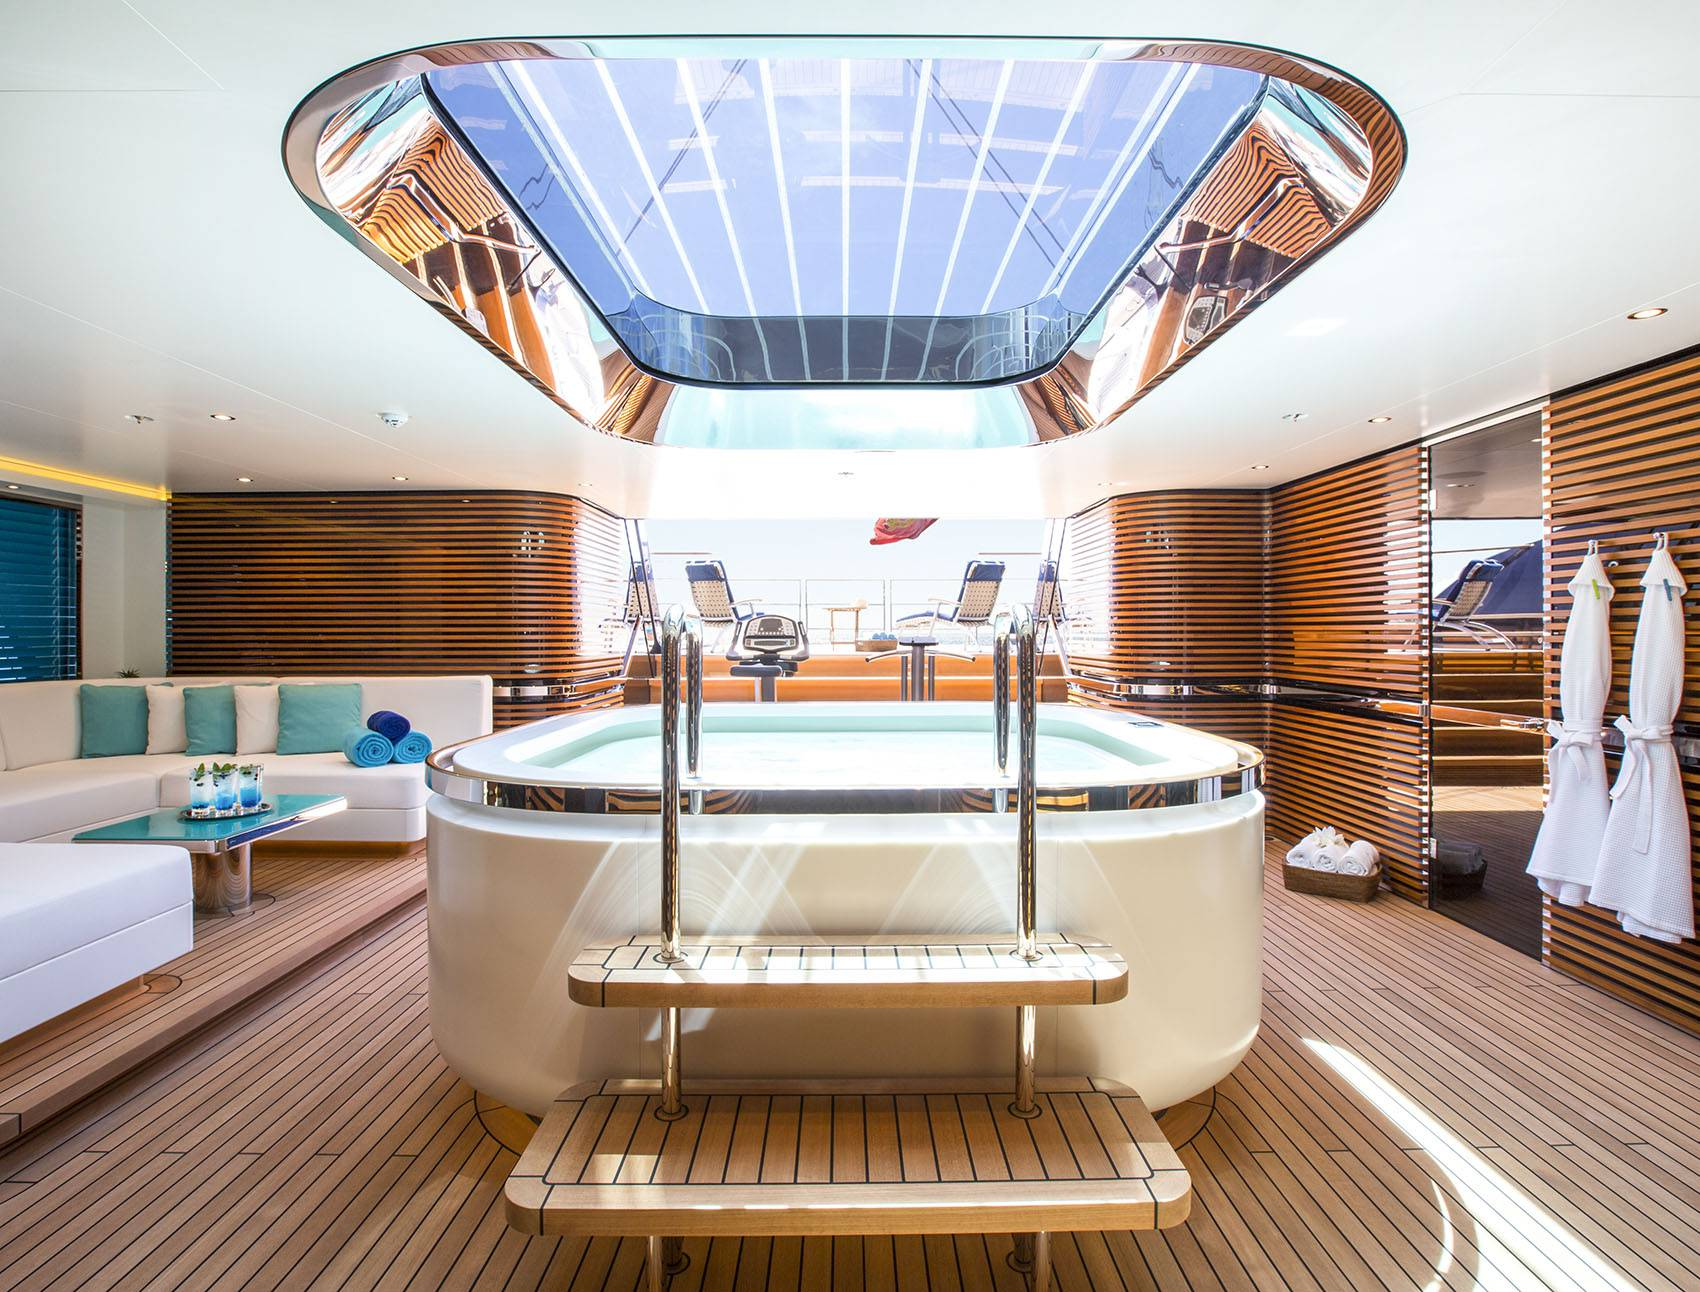 Superyacht Interiors & Decks